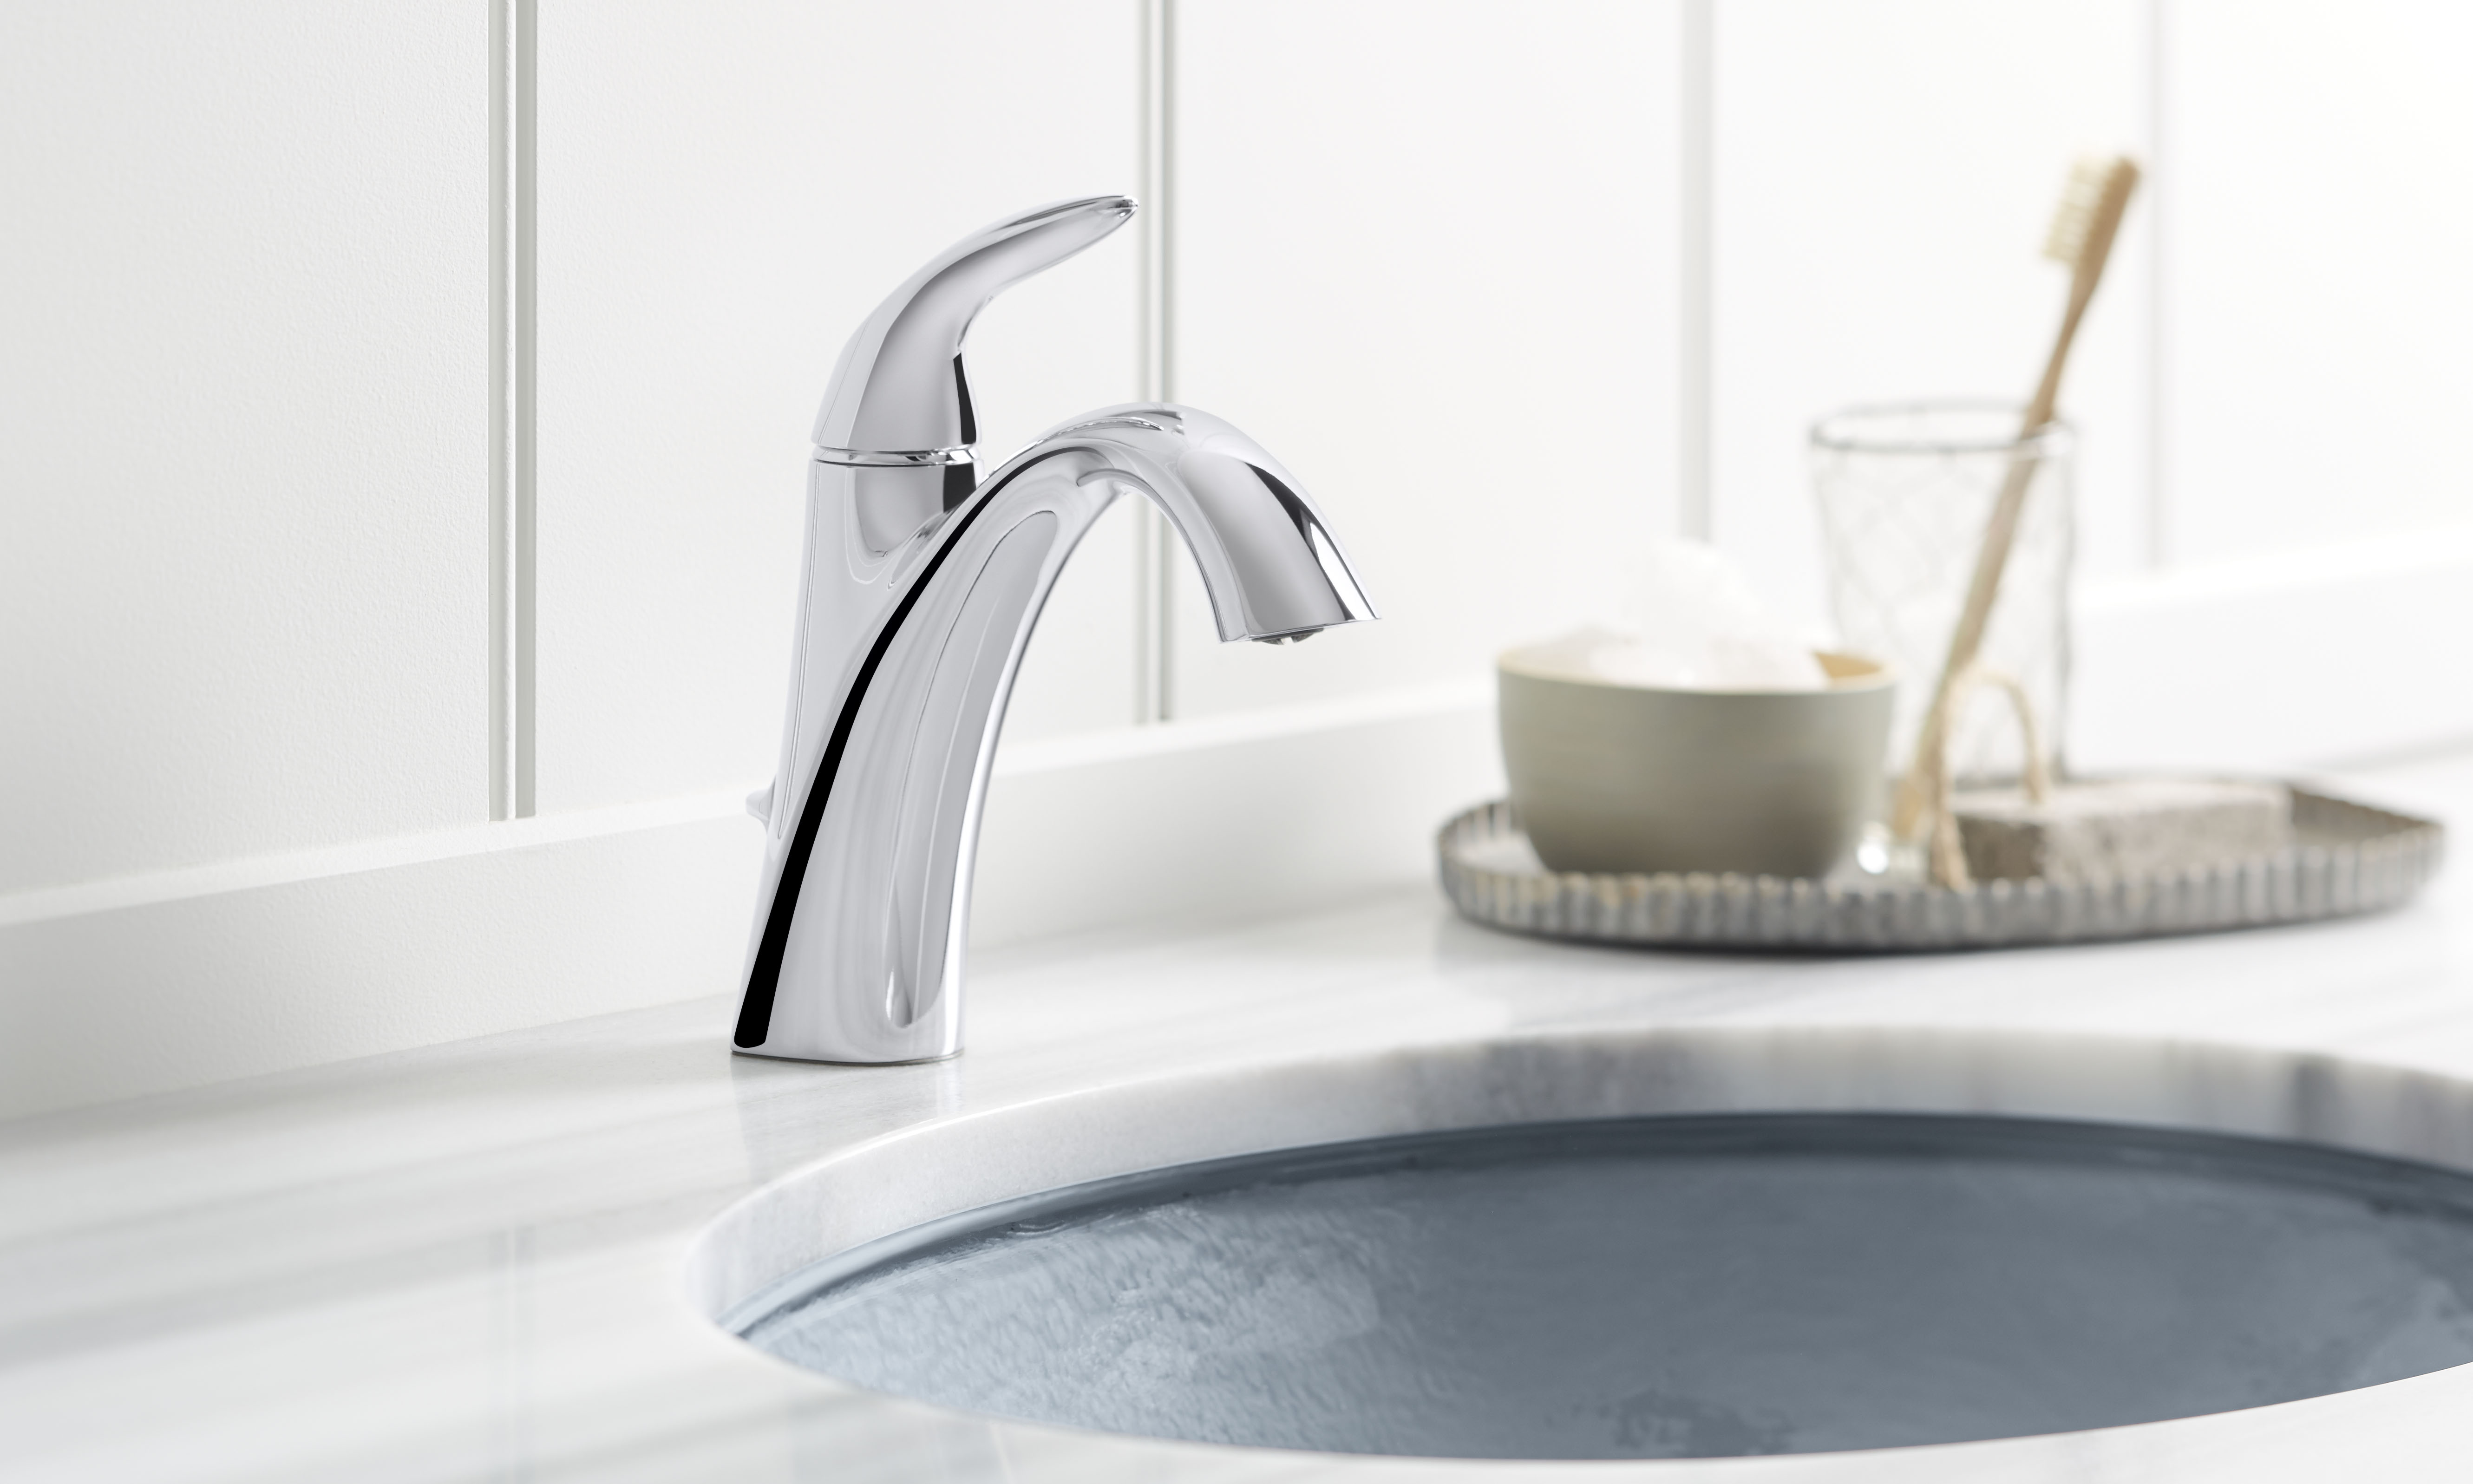 Alteo Faucet     Whist Sink     With its unobtrusive color, this Polished Chrome finish fits in well with the traditional wall panels and modern sink in this space.